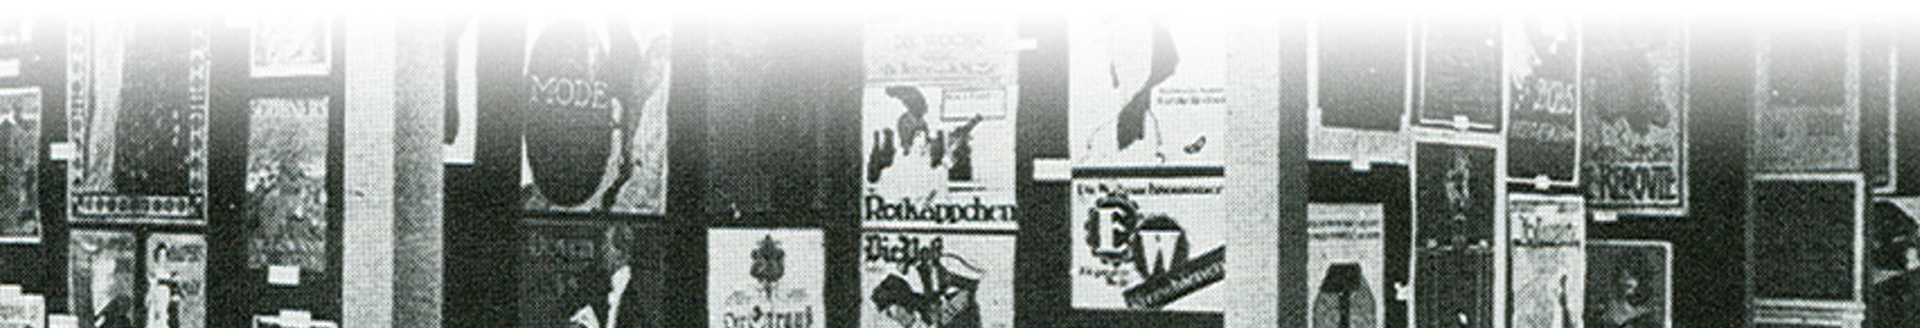 """""""German High Court Famous Poster Collection Stolen by the Nazis Must Be Returned to Collector's Son"""" - Osen LLC Press Release"""